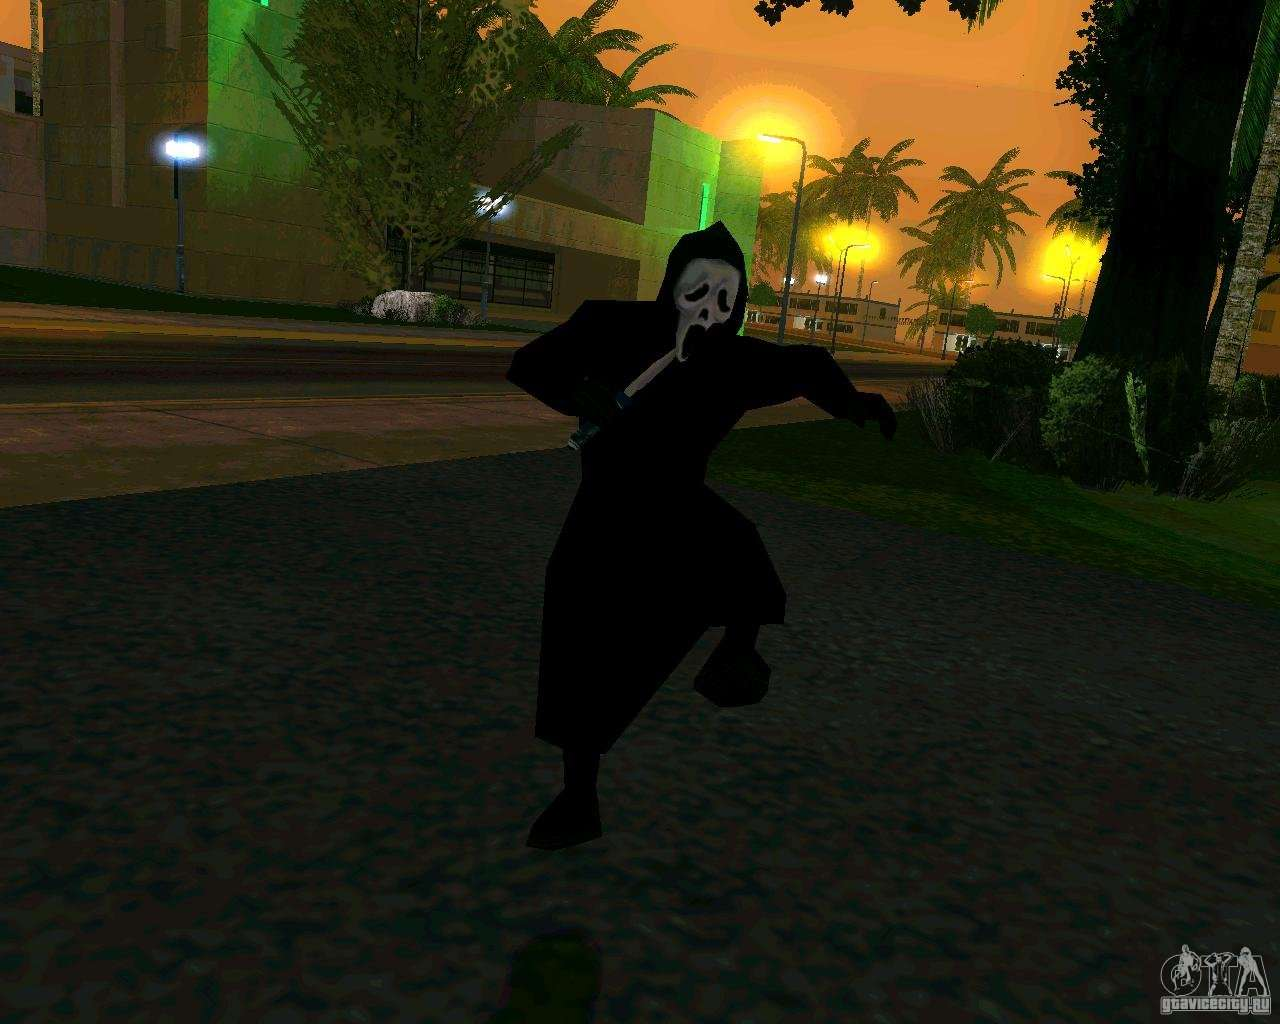 Scream scream for gta san andreas